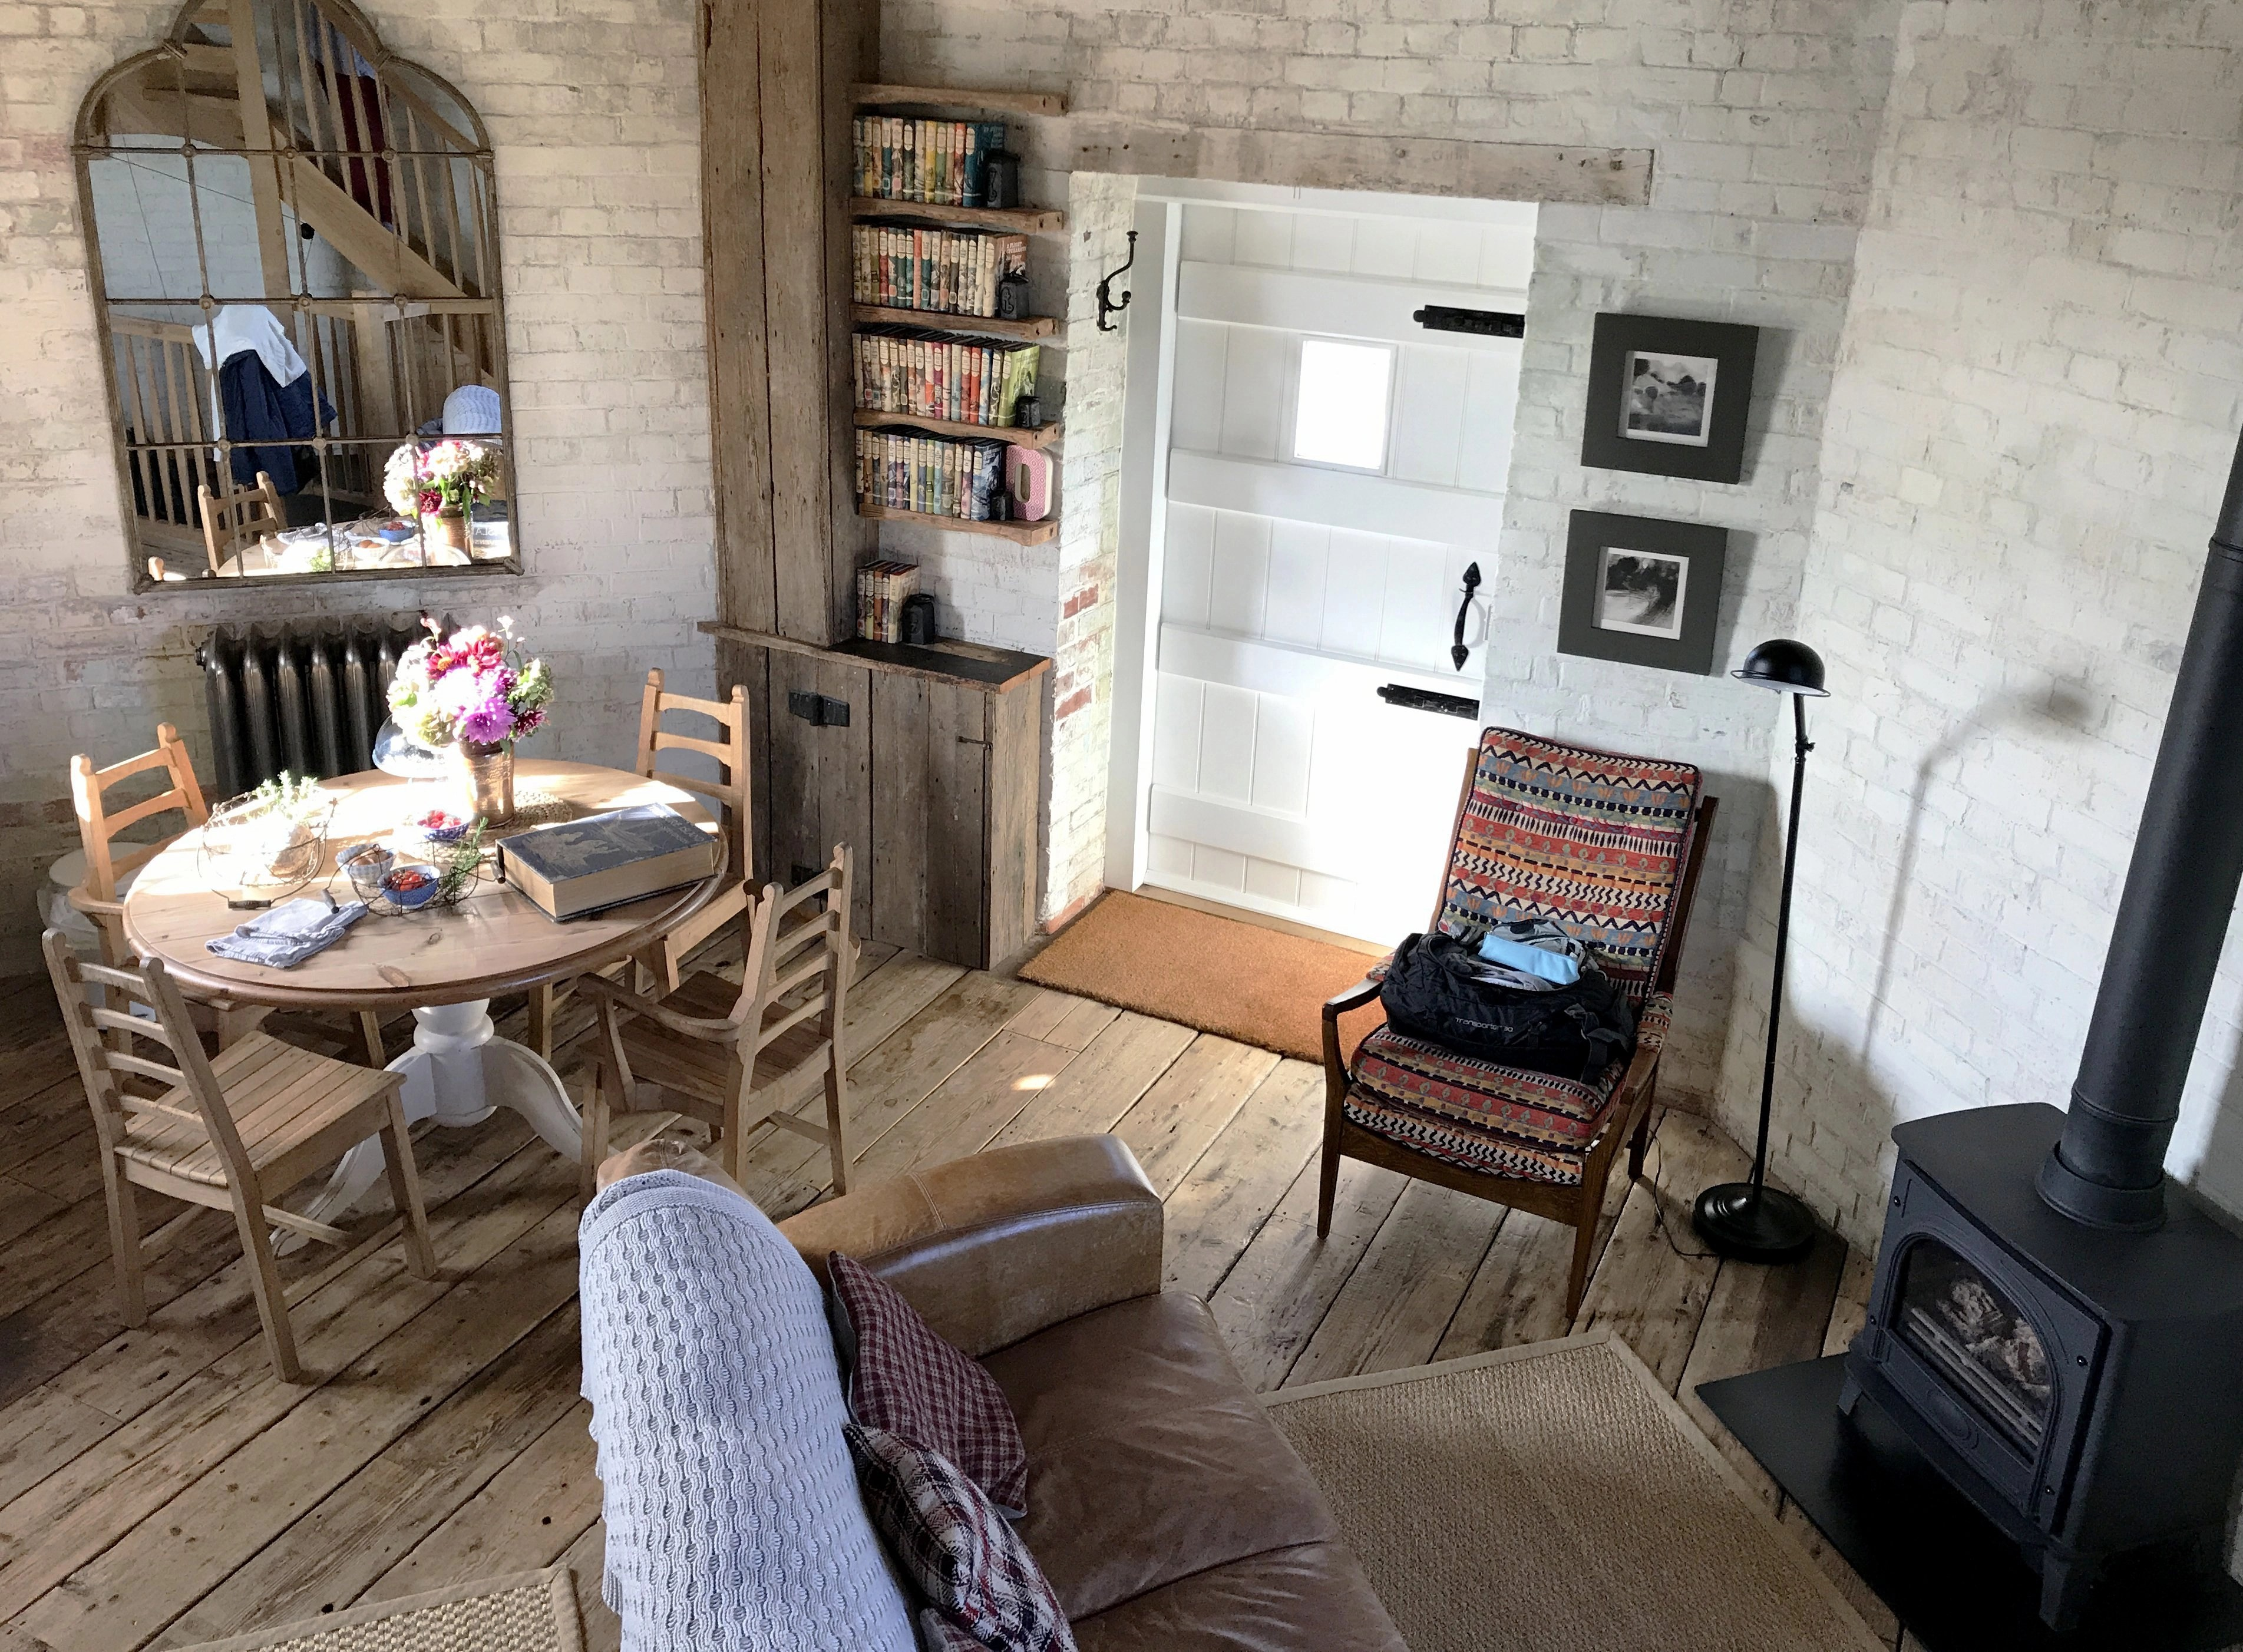 Stunning Airbnb home in a renovated windmill, rural Kent